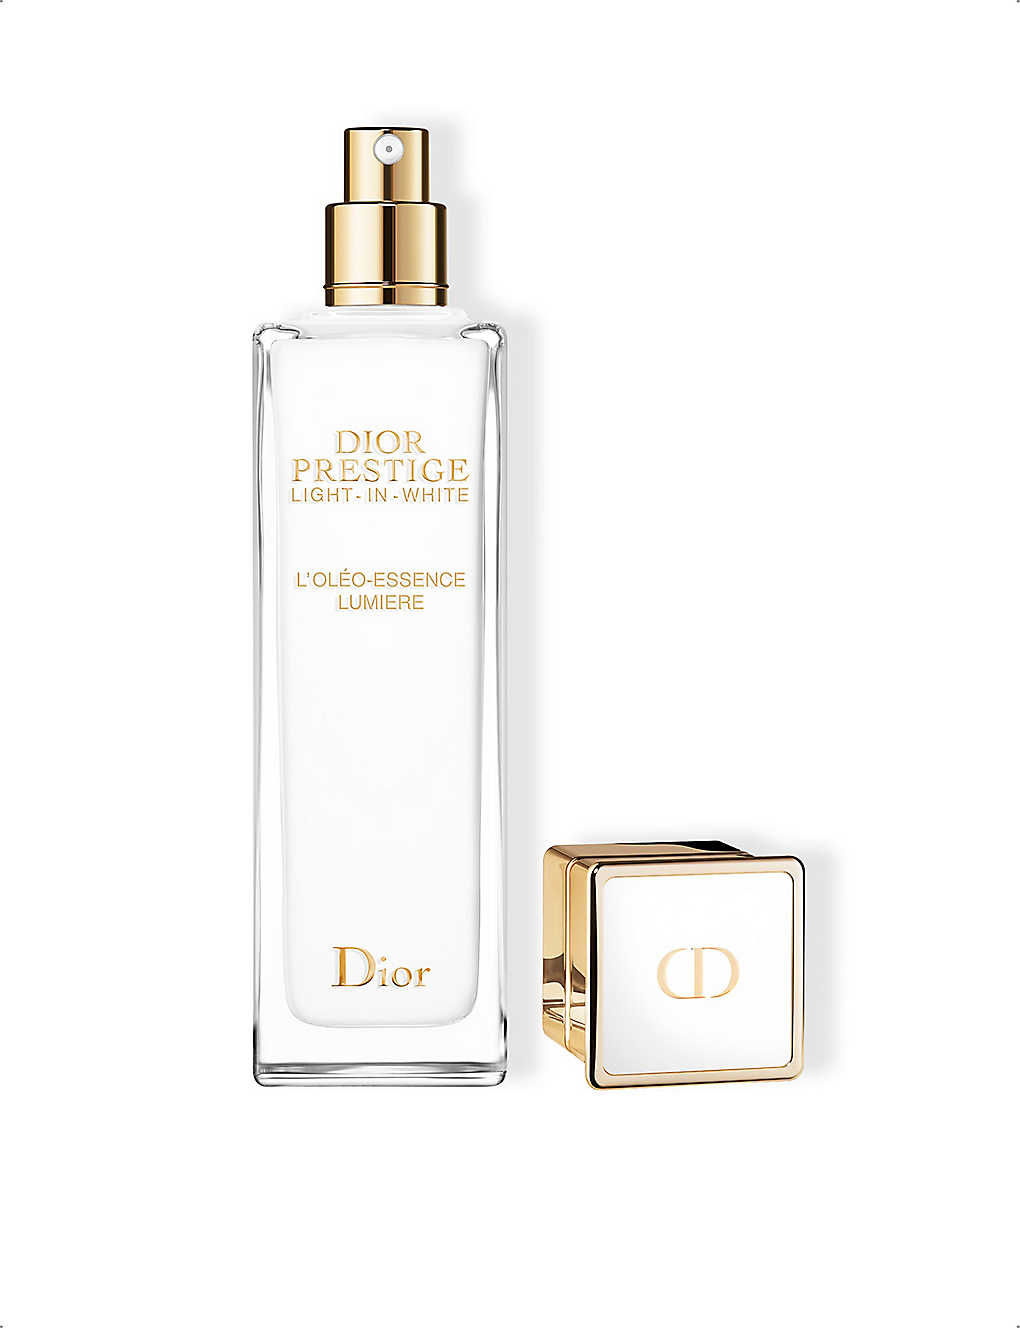 DIOR: Dior Prestige Light-in-White L'oléo-Essence Lumière 150ml